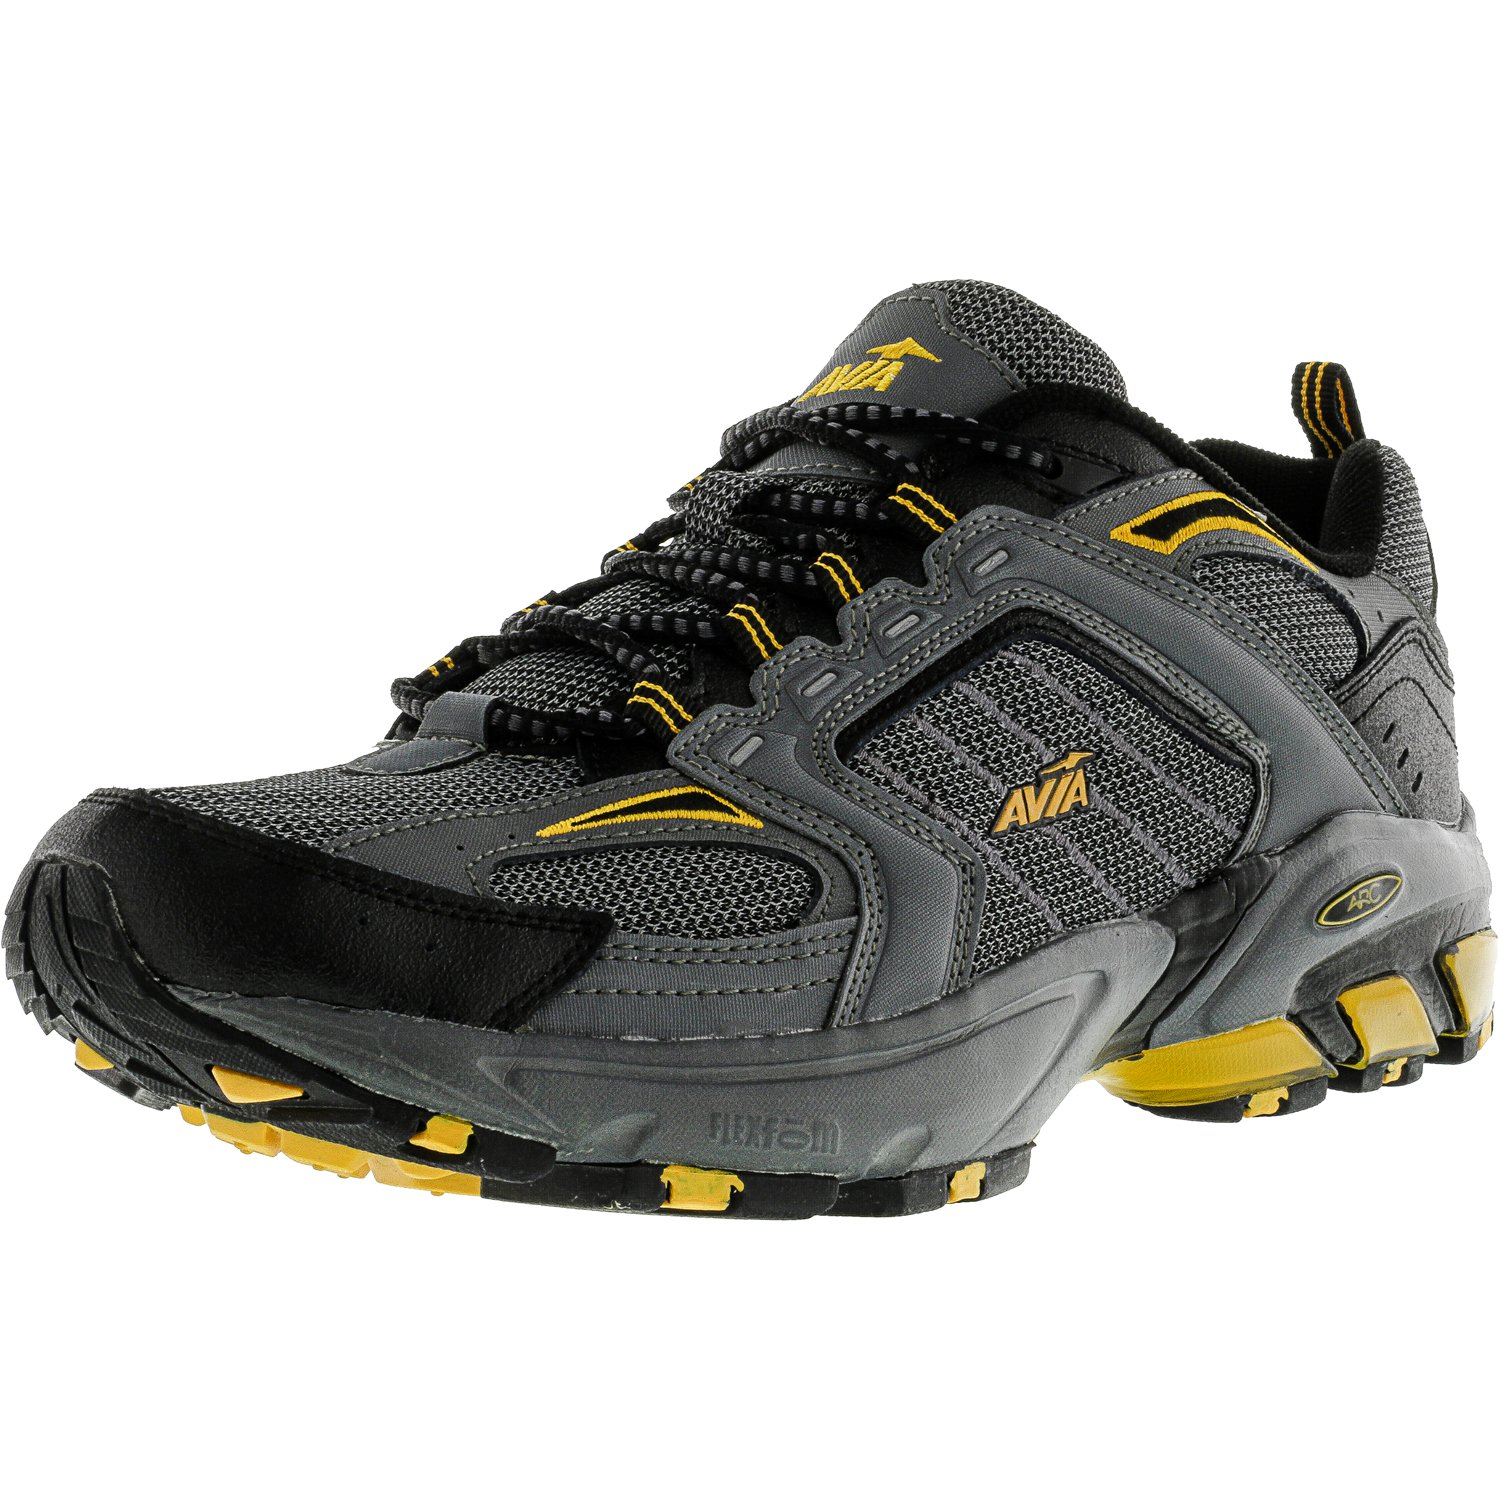 Avia Men's 6028 Dark Grey   Black Yellow Ankle-High Running Shoe 12M by Avia